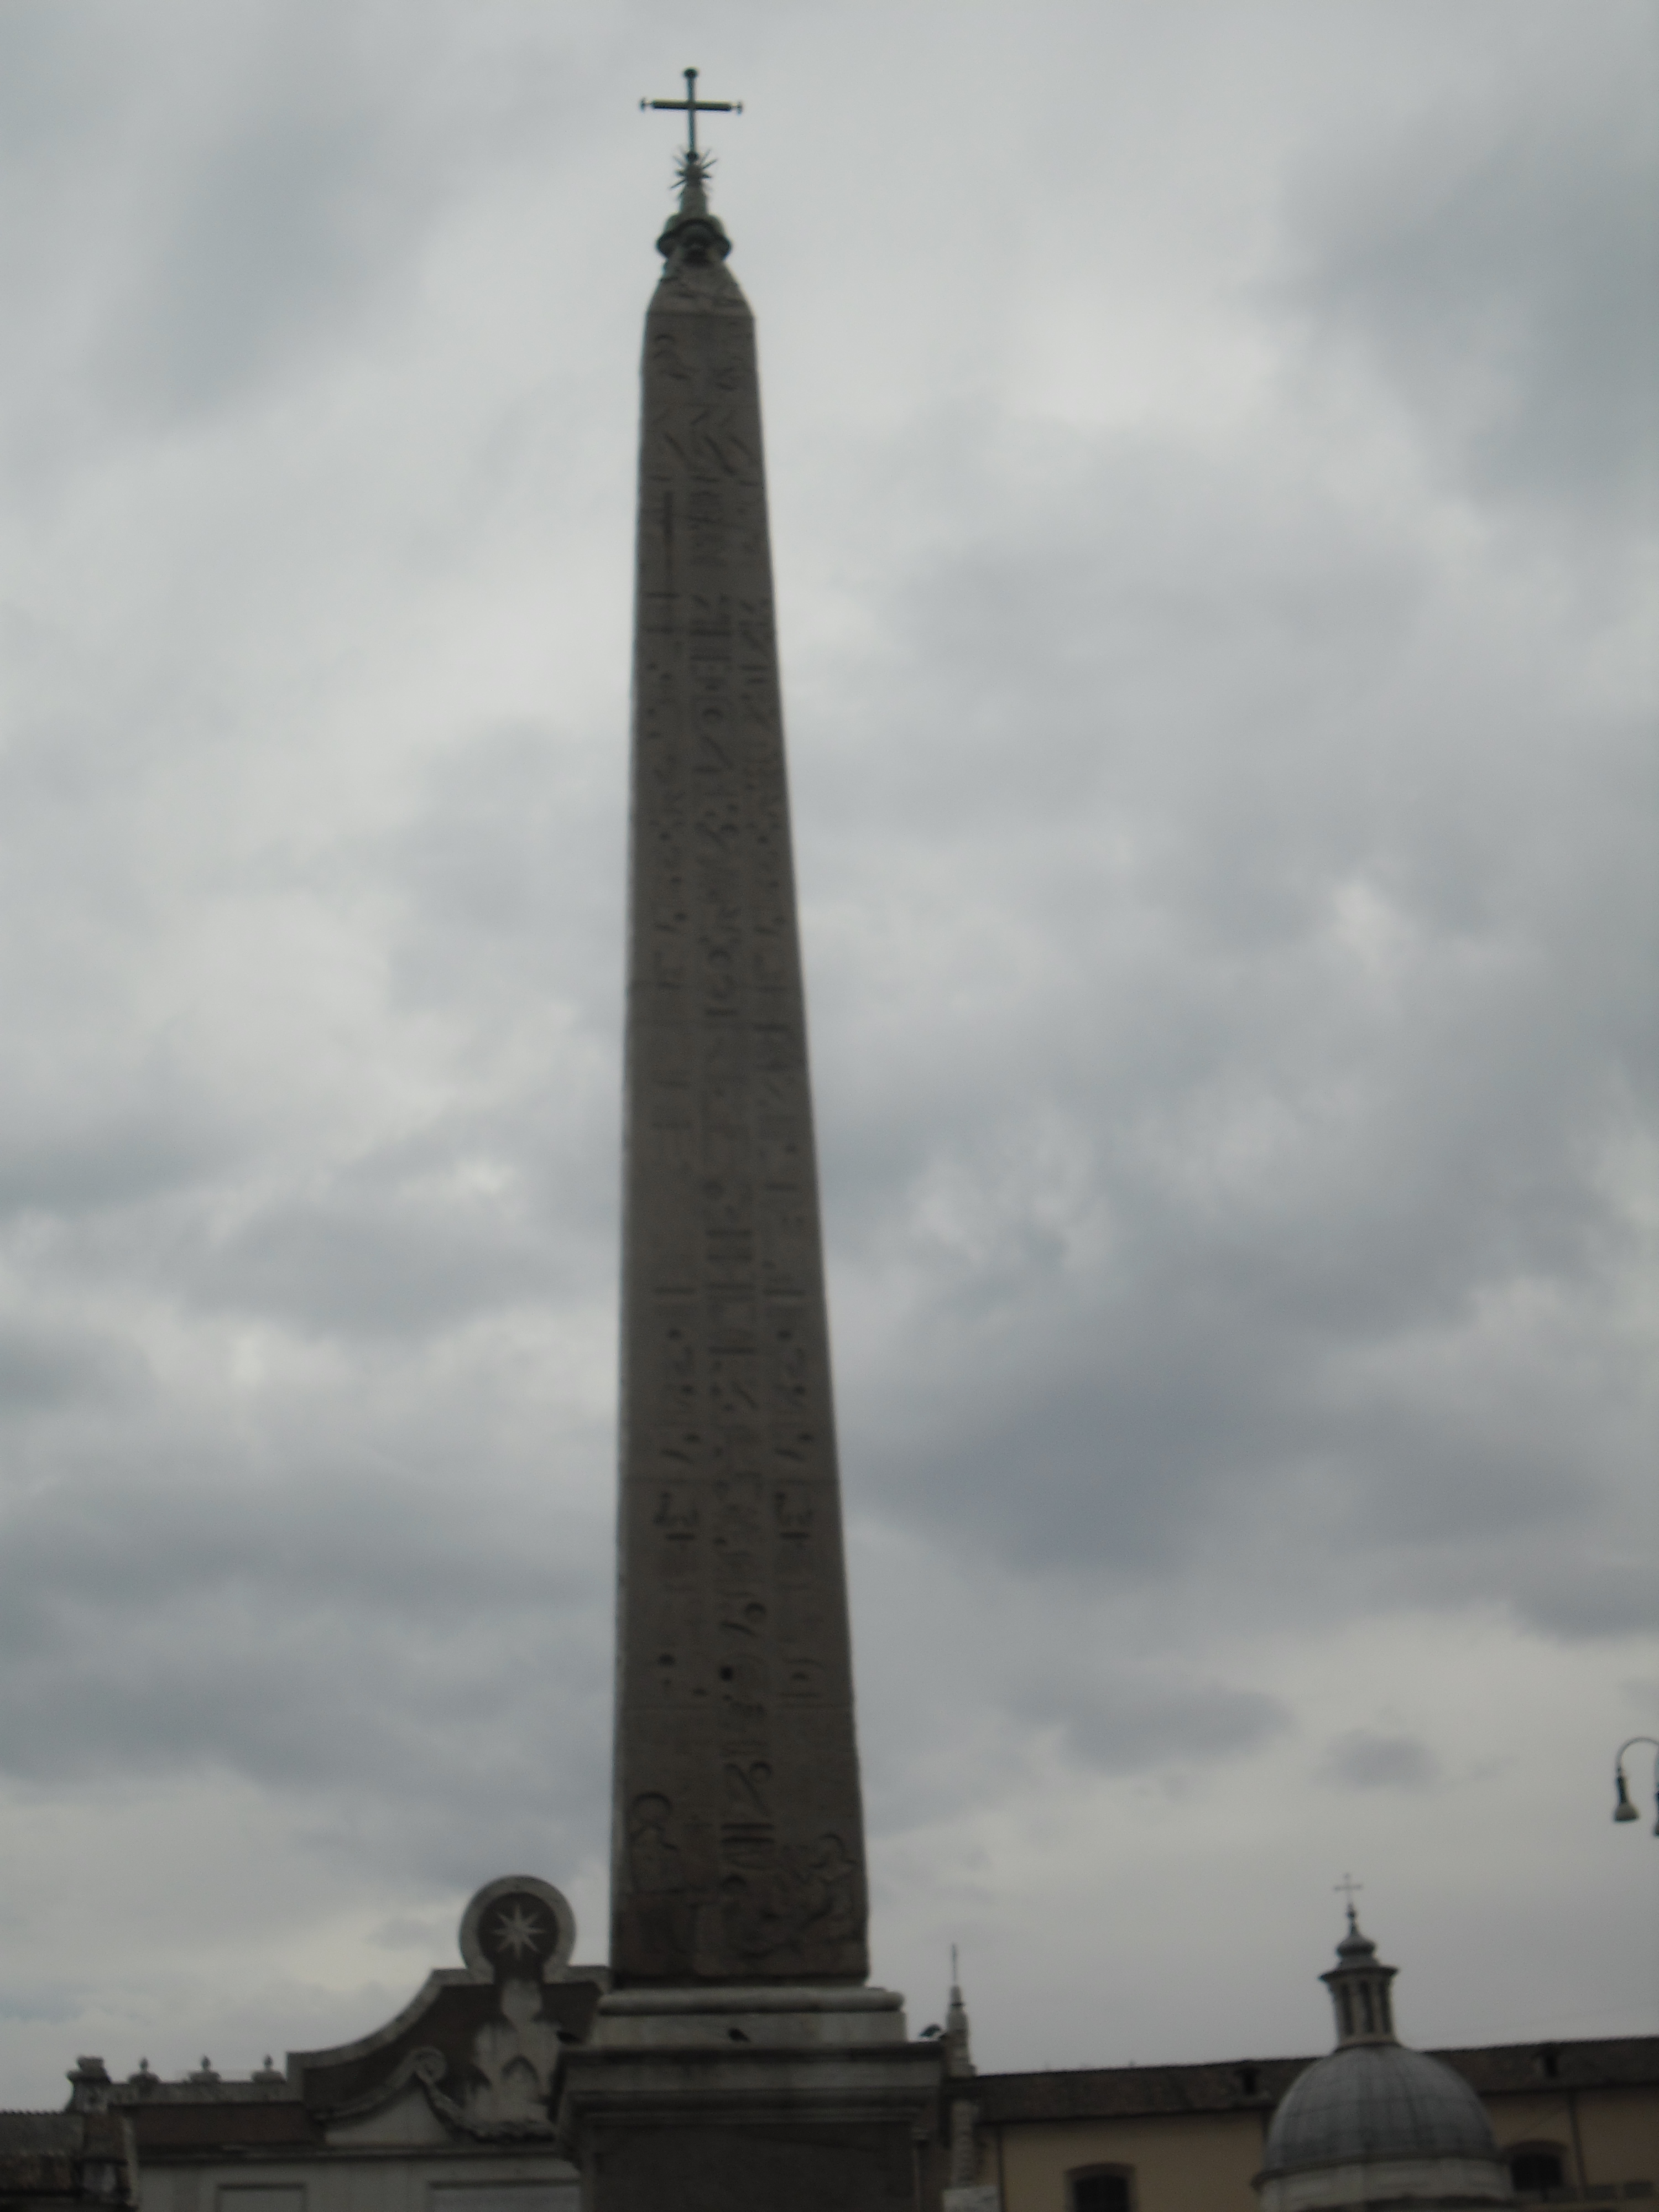 roma-piazza-popolo-obelisk-egyptian-36m-16c-aug13